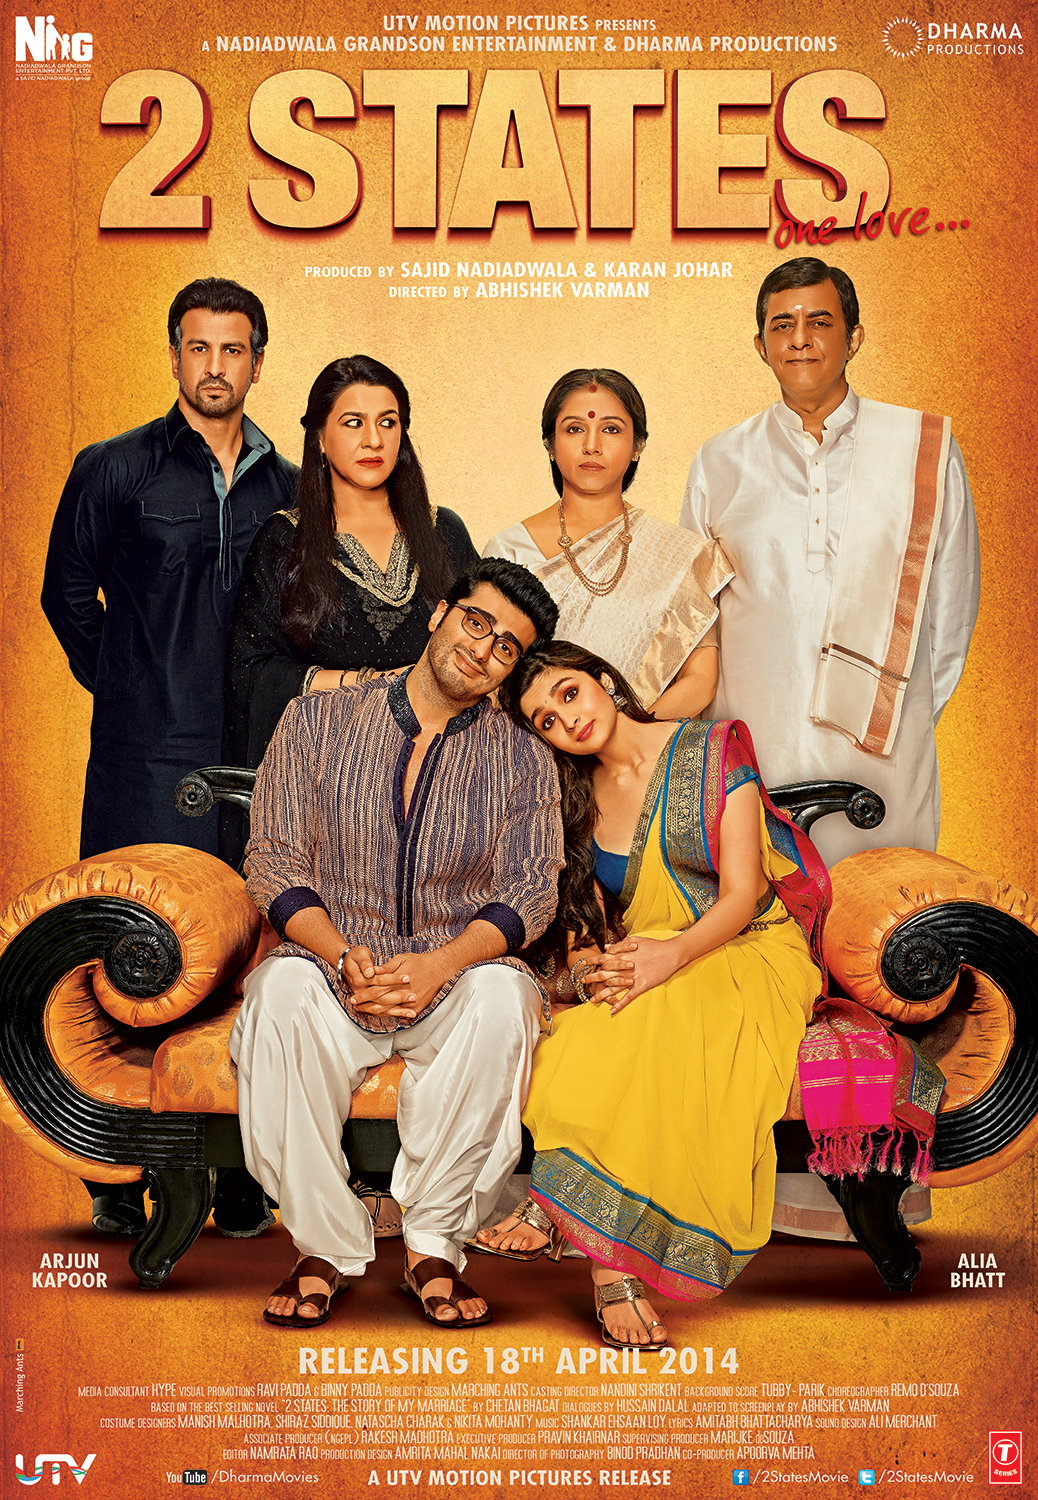 2 STATES (HINDI) (IN DIGITAL) (Unrated)